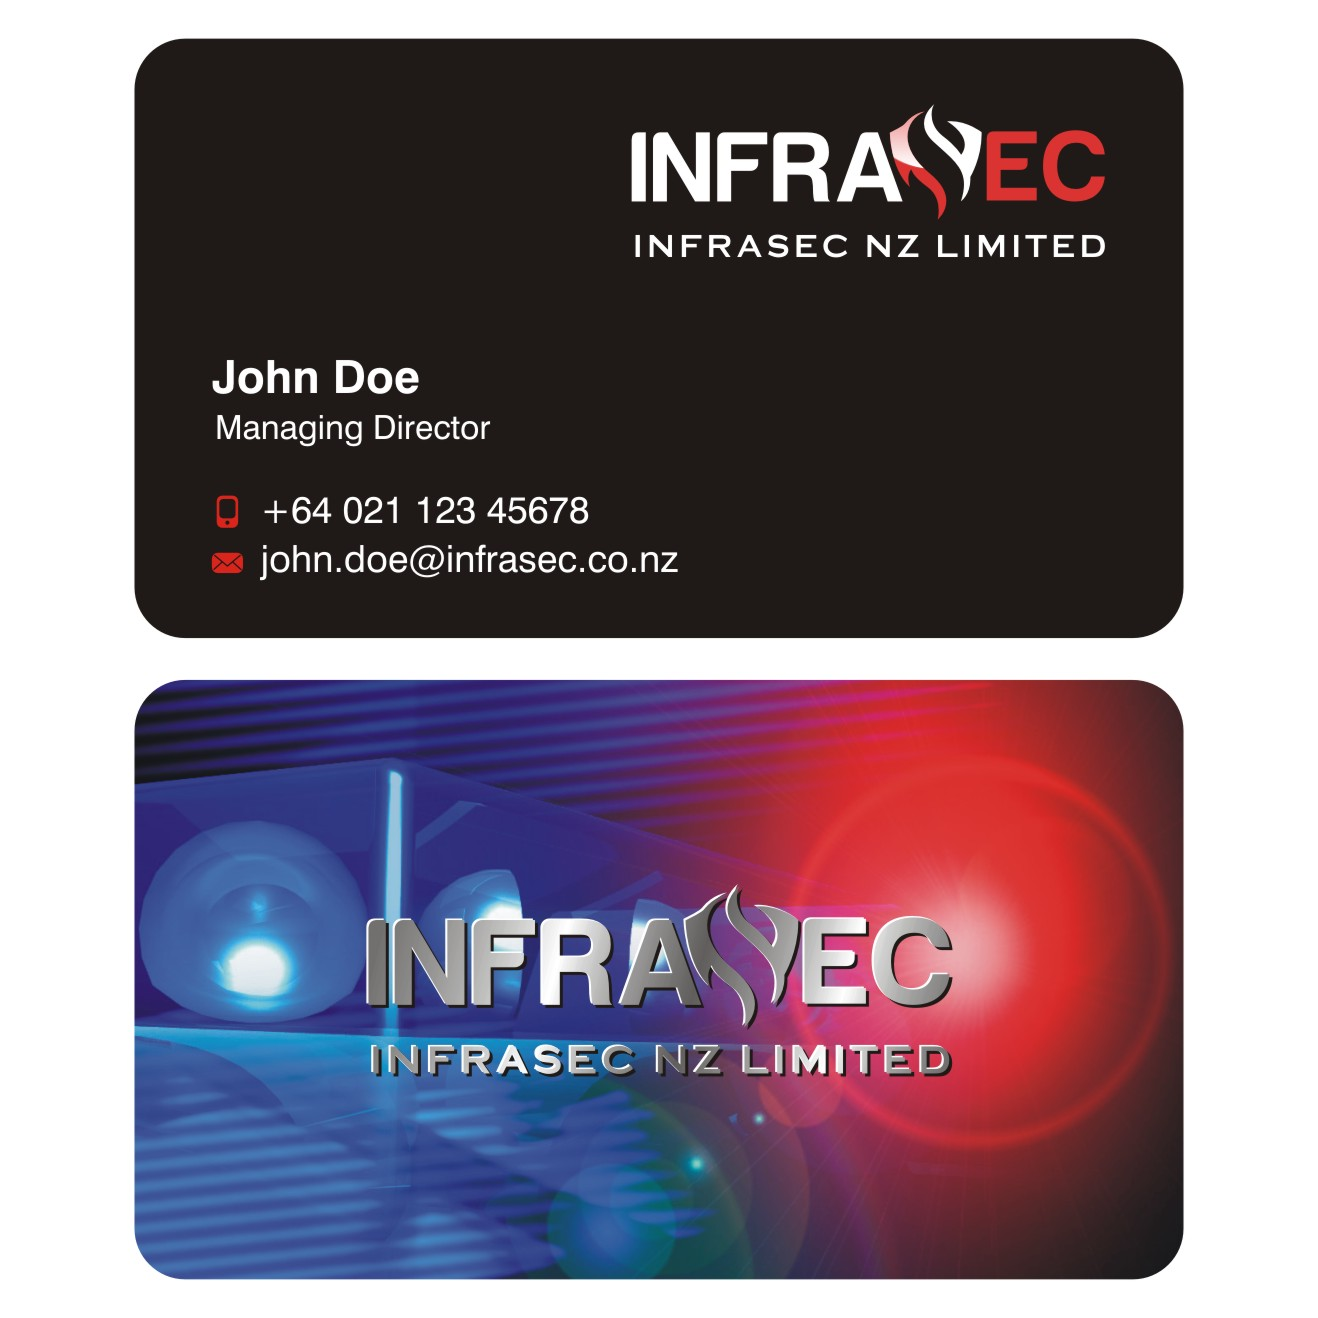 Serious modern business business card design for a company by business card design by sushma for this project design 11623675 reheart Choice Image